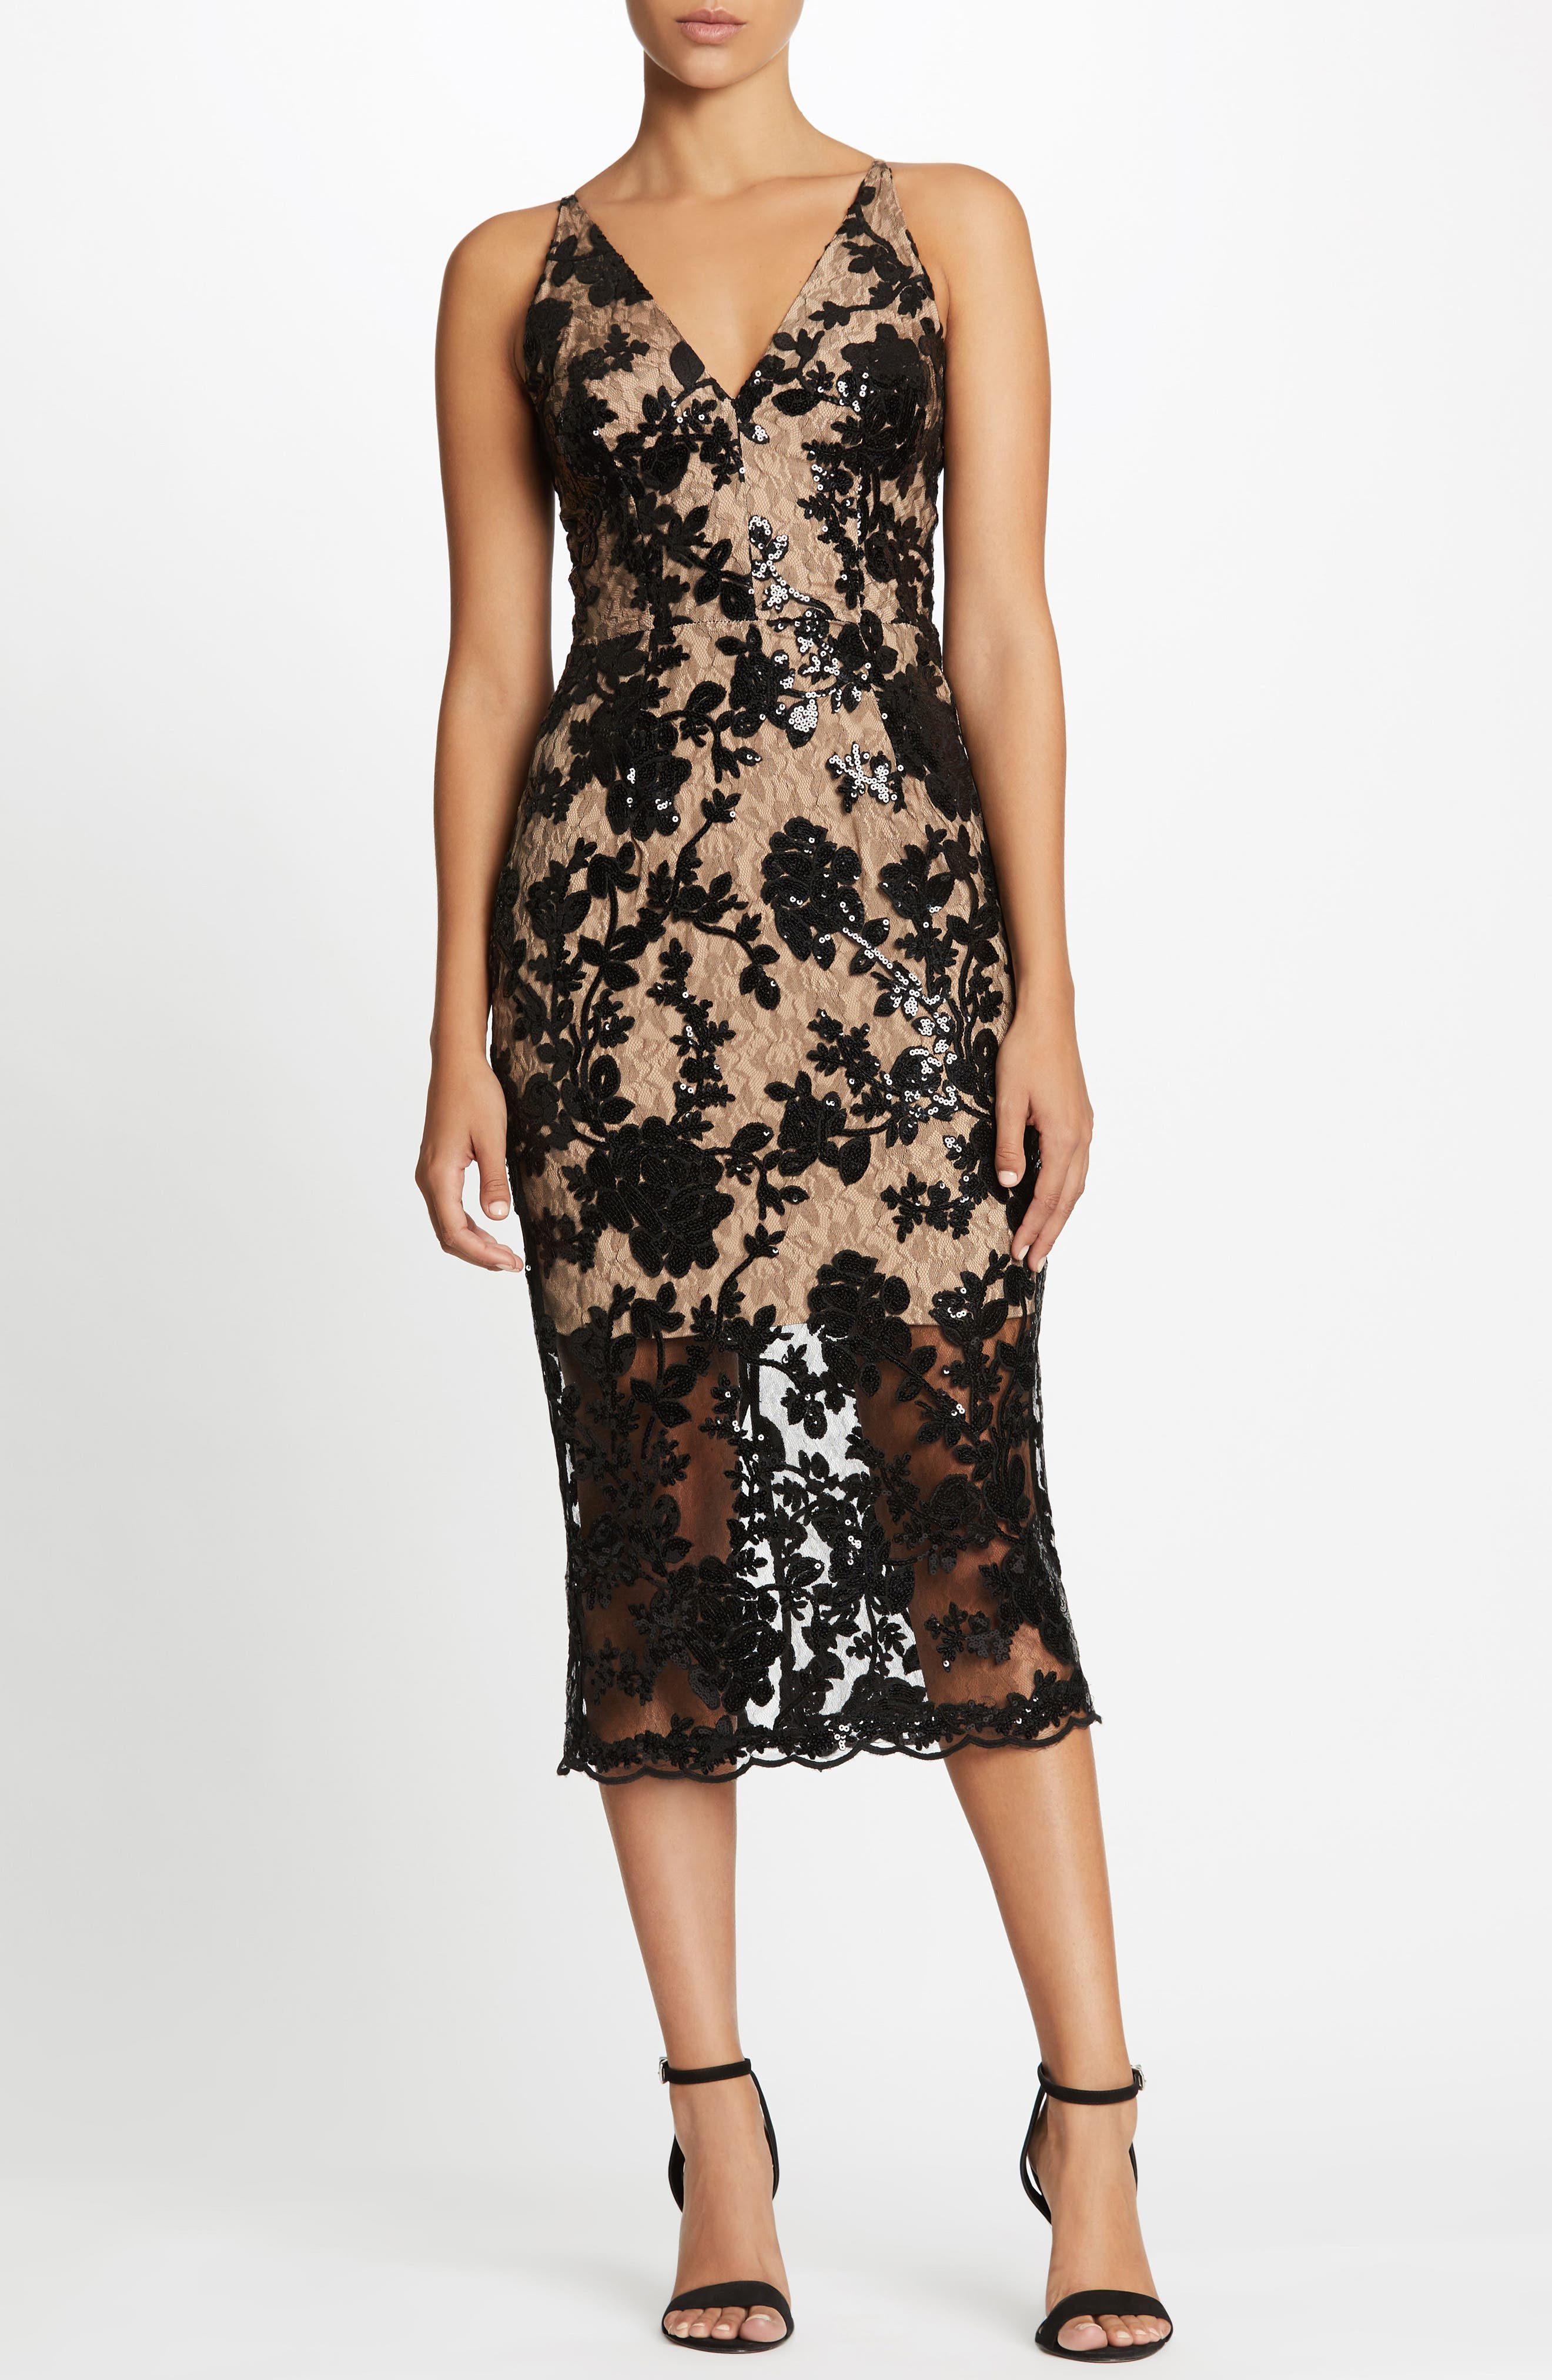 Alternate Image 1 Selected - Dress the Population Rebecca Floral Lace Midi Dress (Nordstrom Exclusive)